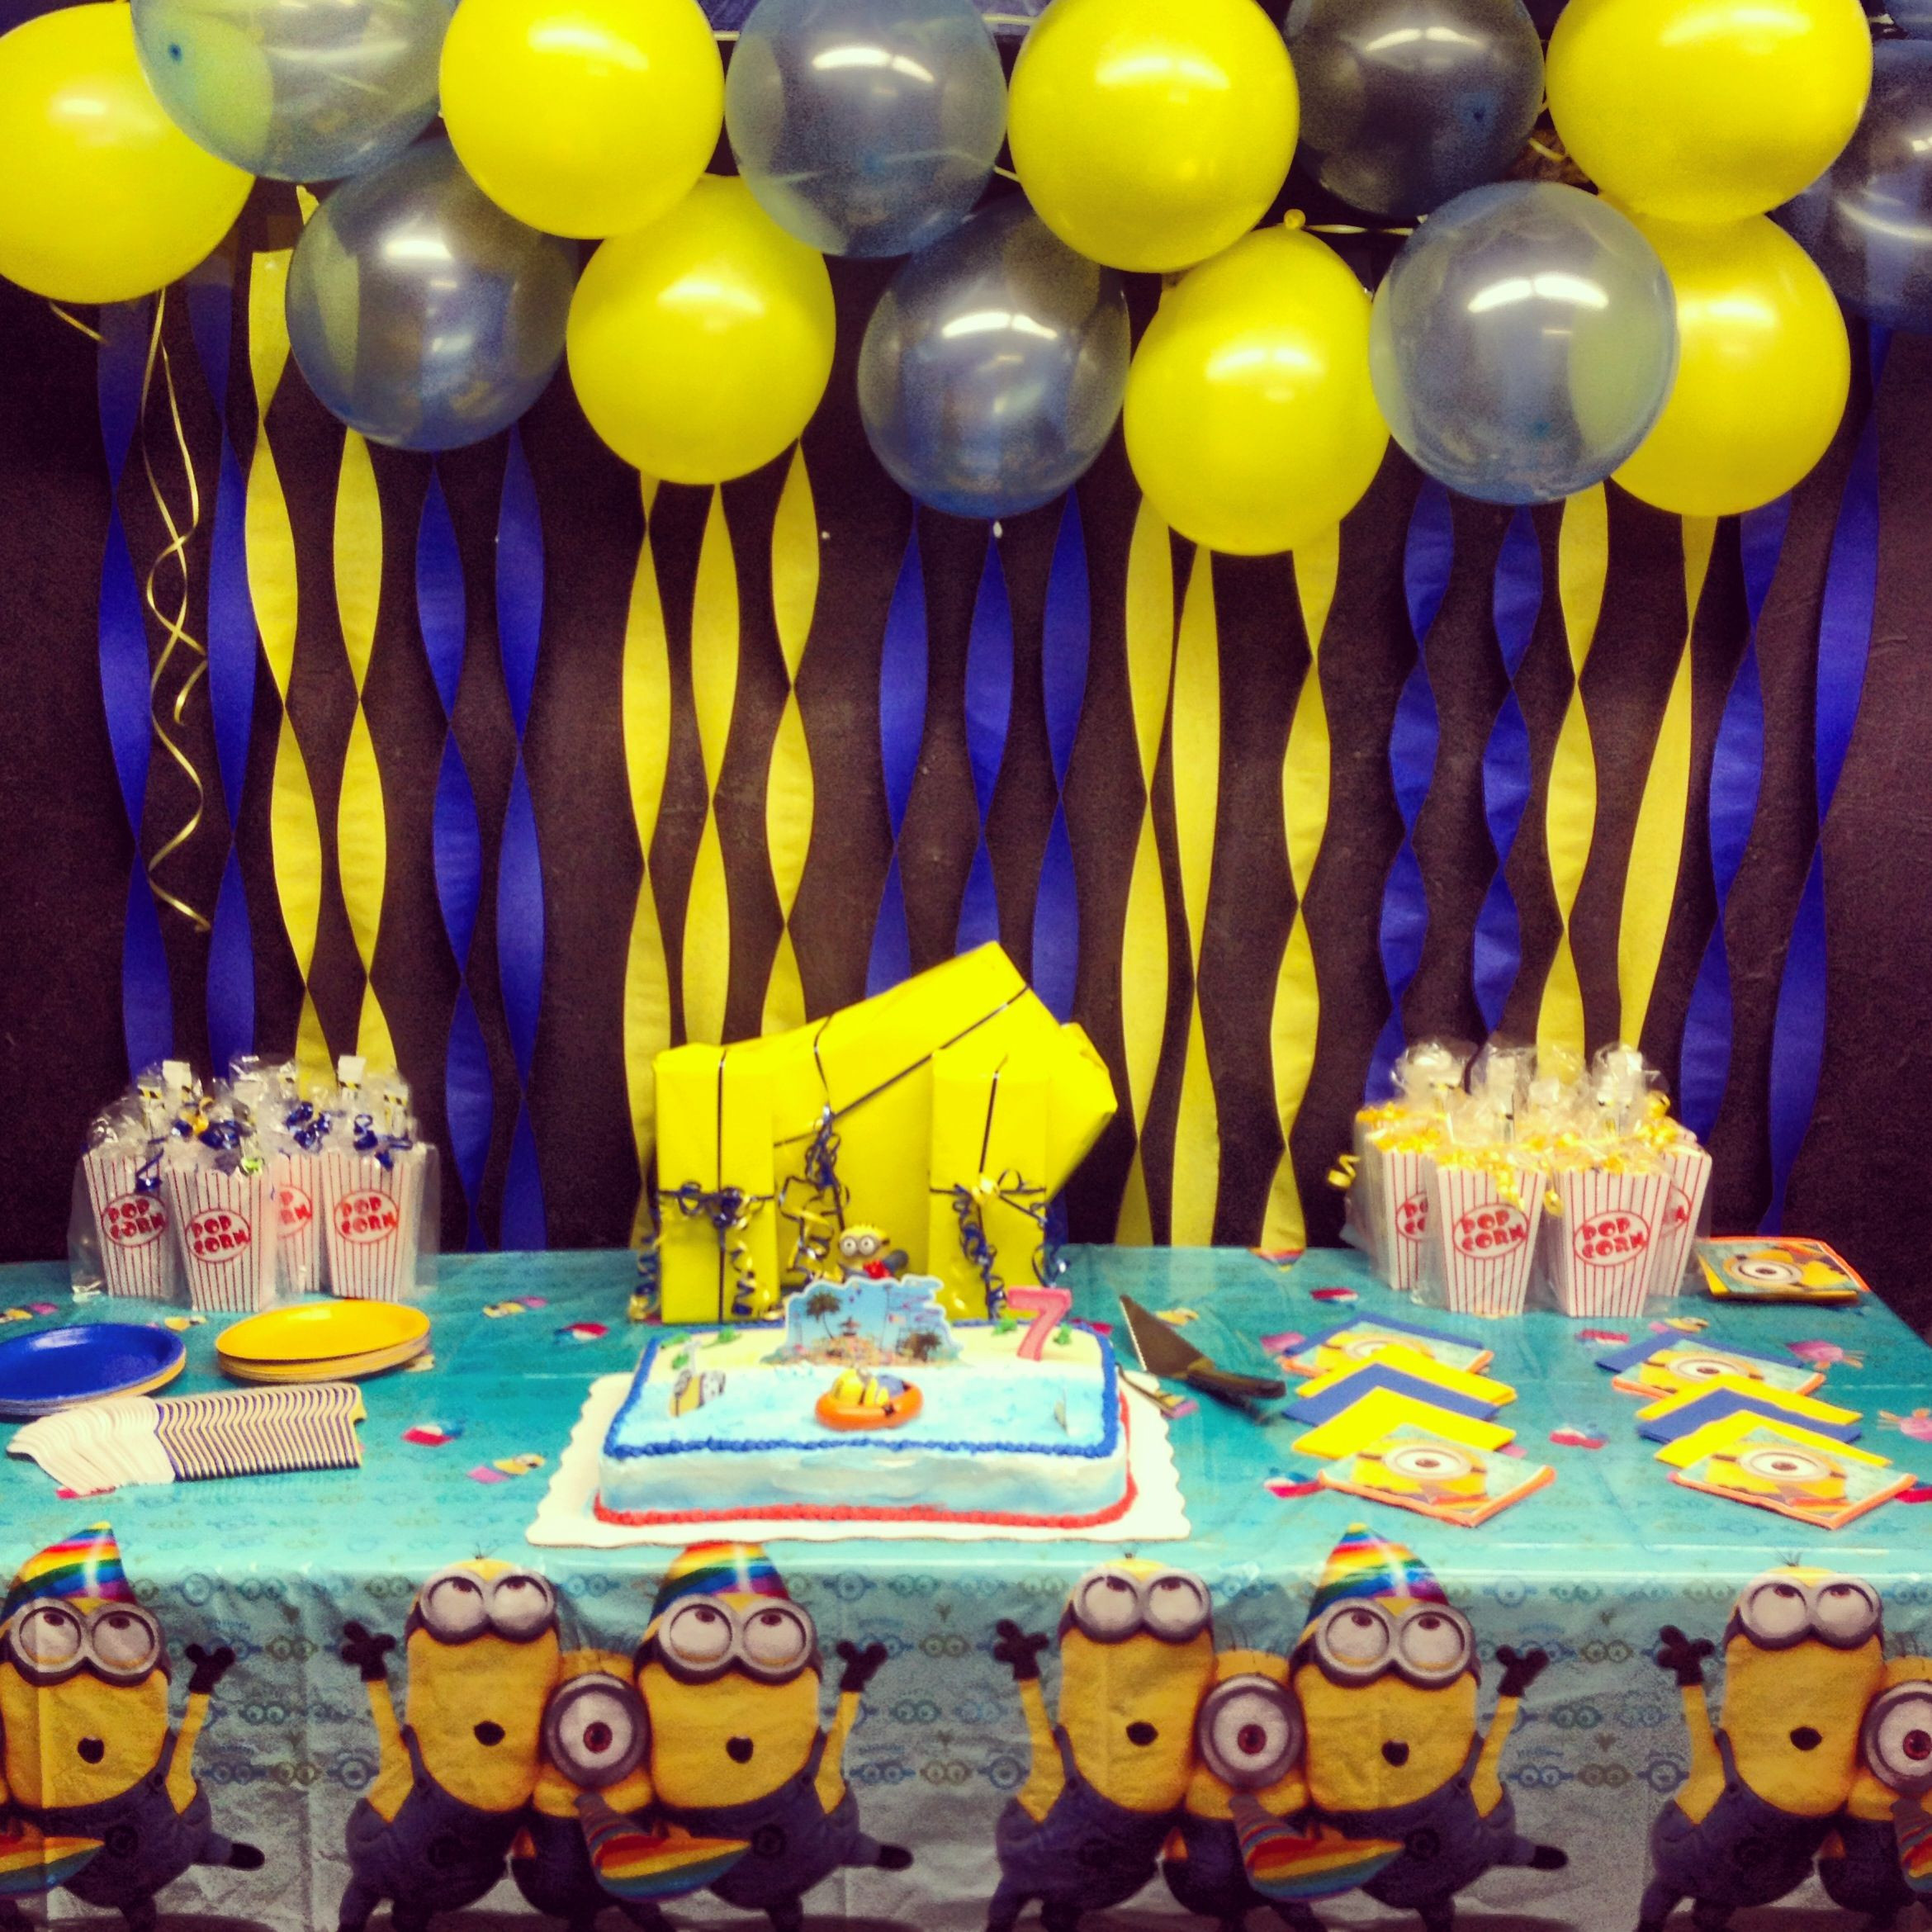 Best ideas about Minion Birthday Party Decorations . Save or Pin Minion party on Pinterest Now.